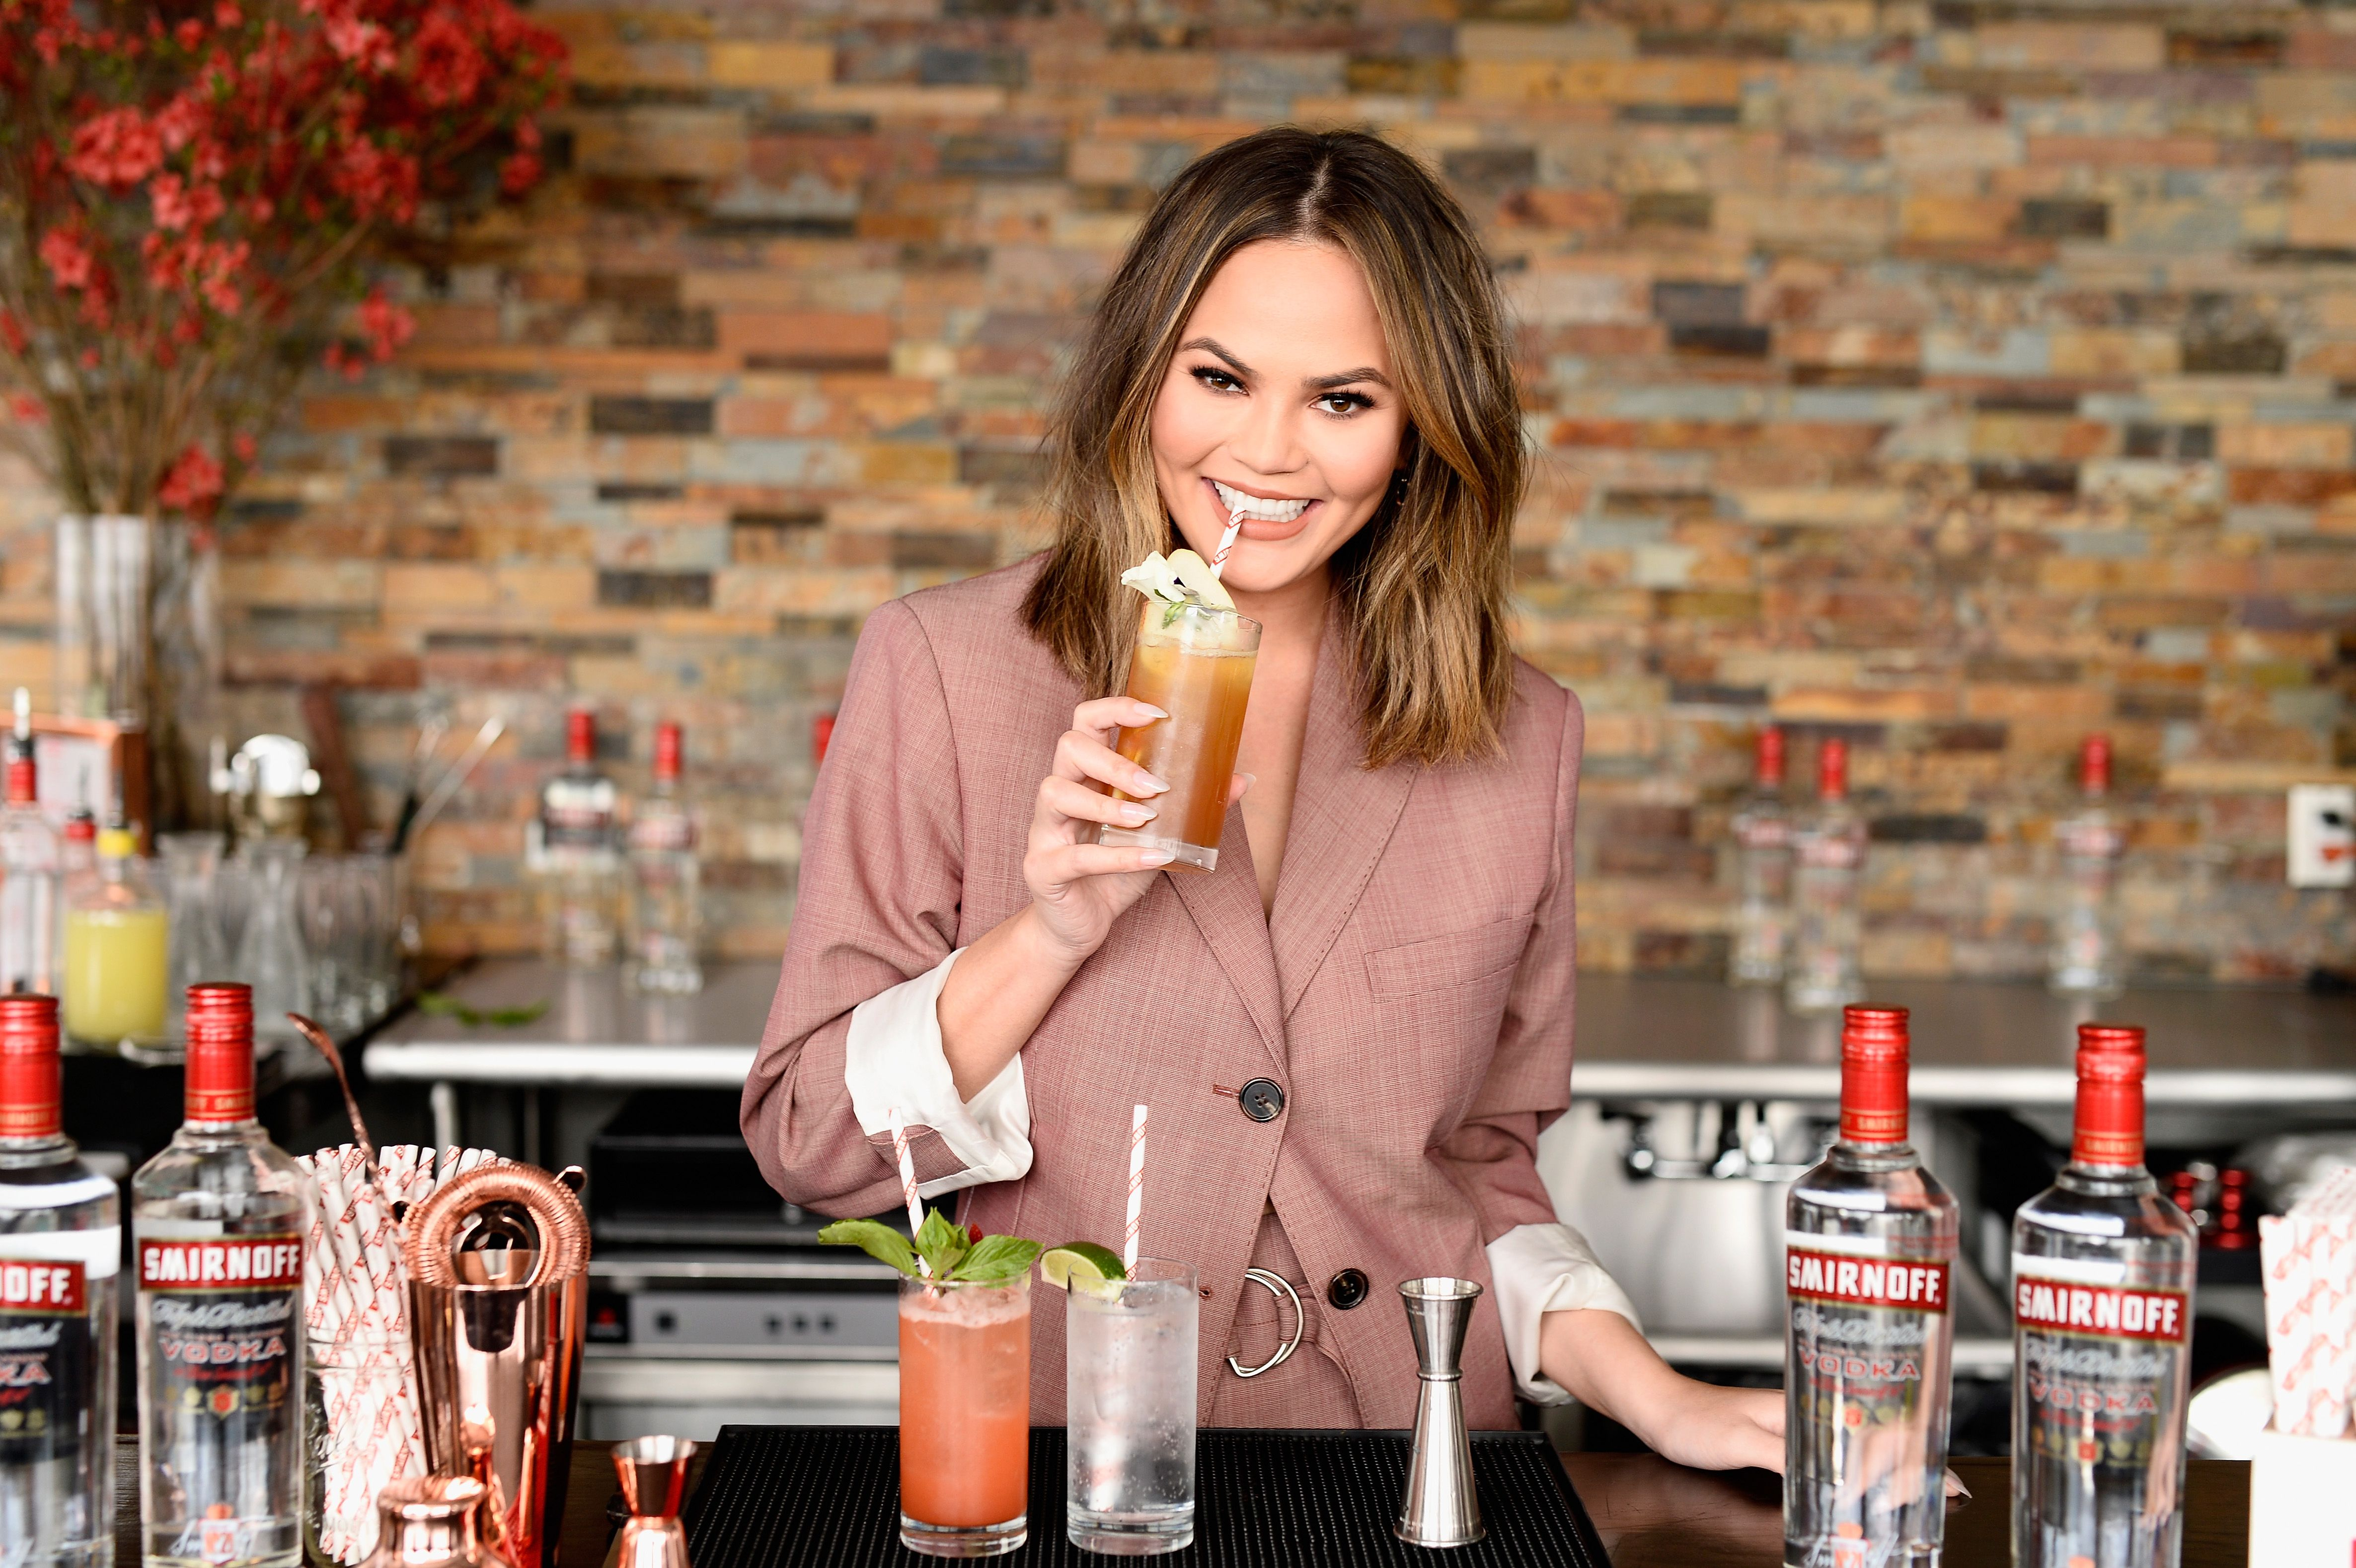 Chrissy Teigen at a Smirnoff event in 2017, in New York City | Source: Getty Images